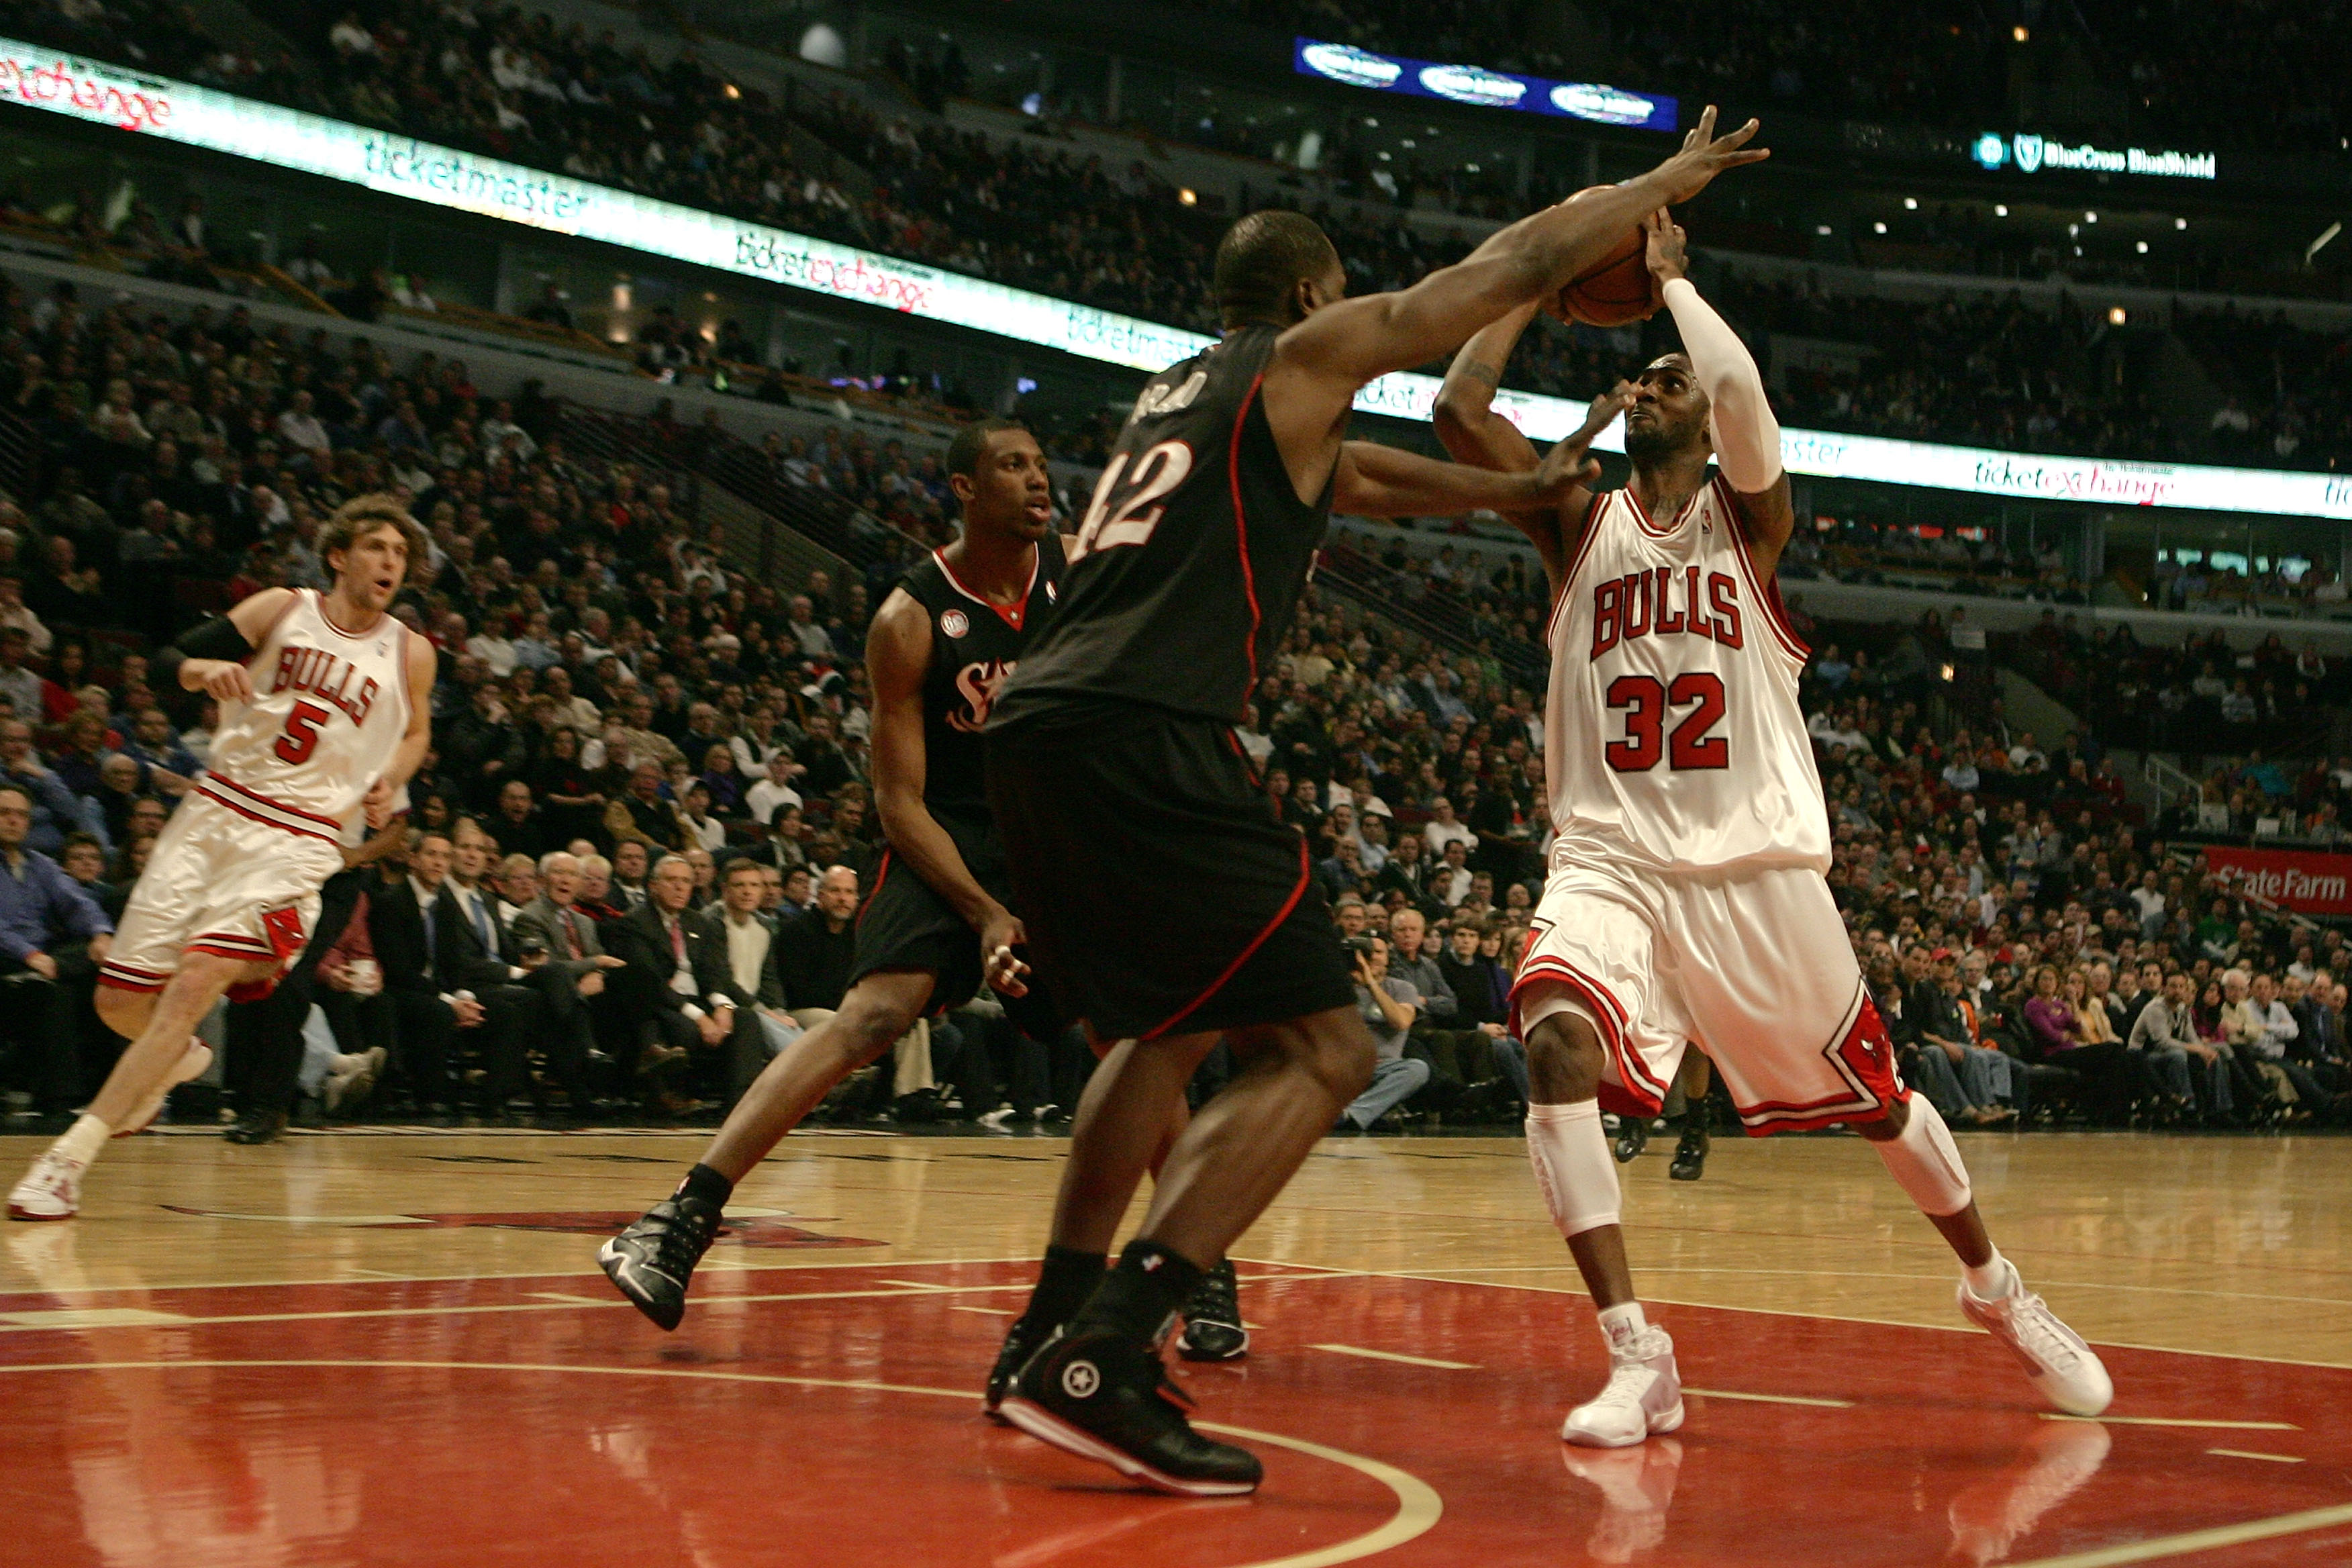 CHICAGO - DECEMBER 02:  Larry Hughes #32 of the Chicago Bulls moves the ball in the key against Elton Brand #42 of the Philadelphia 76ers at the United Center on December 2, 2008 in Chicago, Illinois.  NOTE TO USER: User expressly acknowledges and agrees